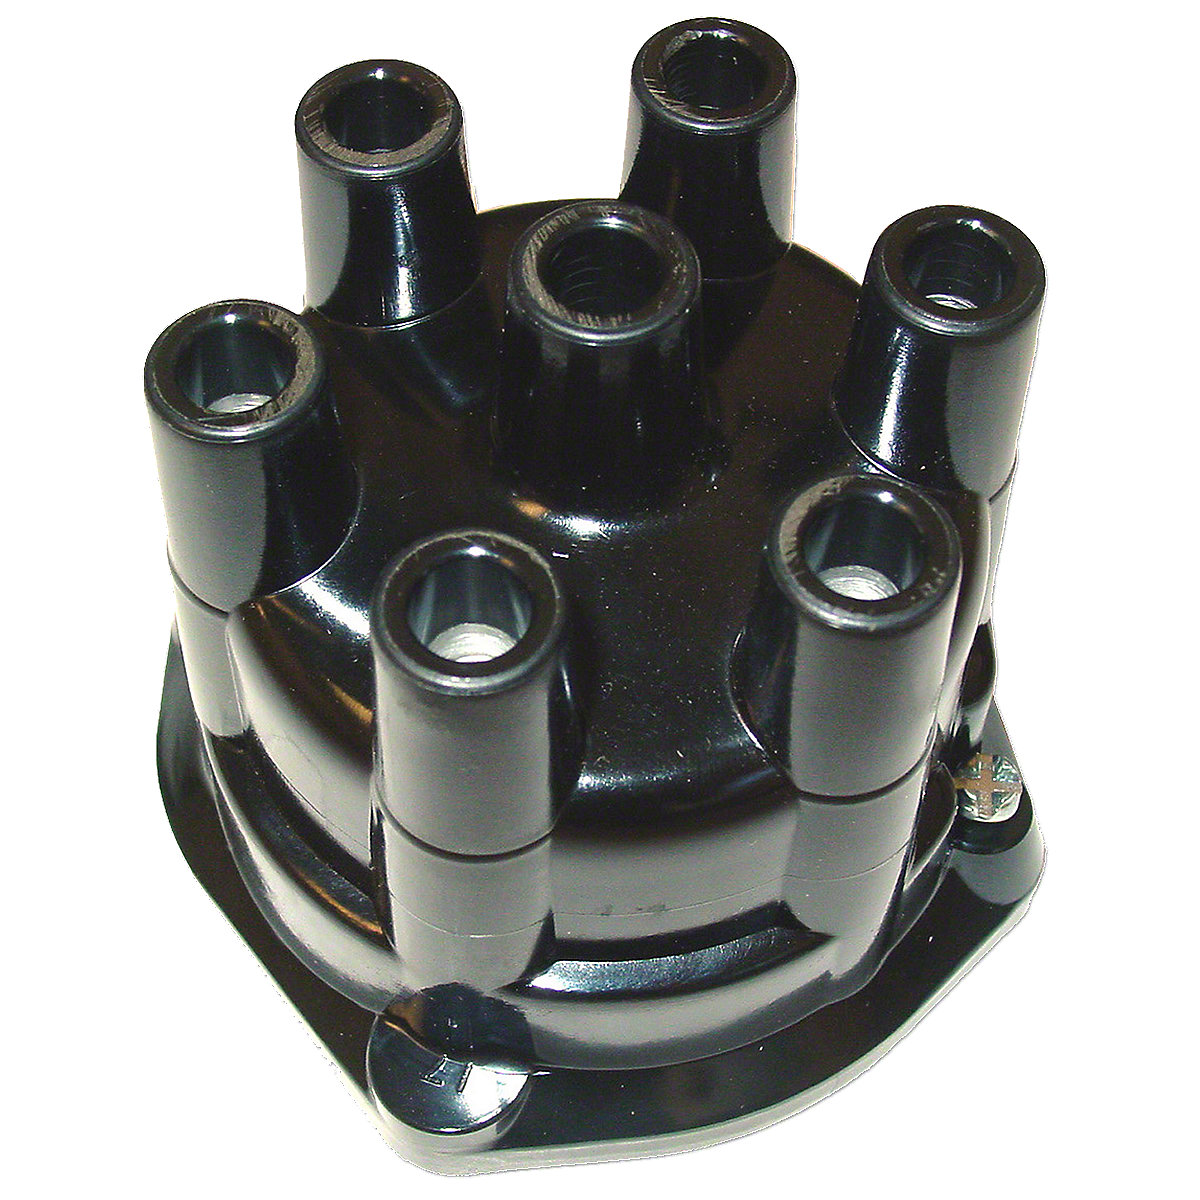 Distributor Cap For Delco Screw Type Distributor